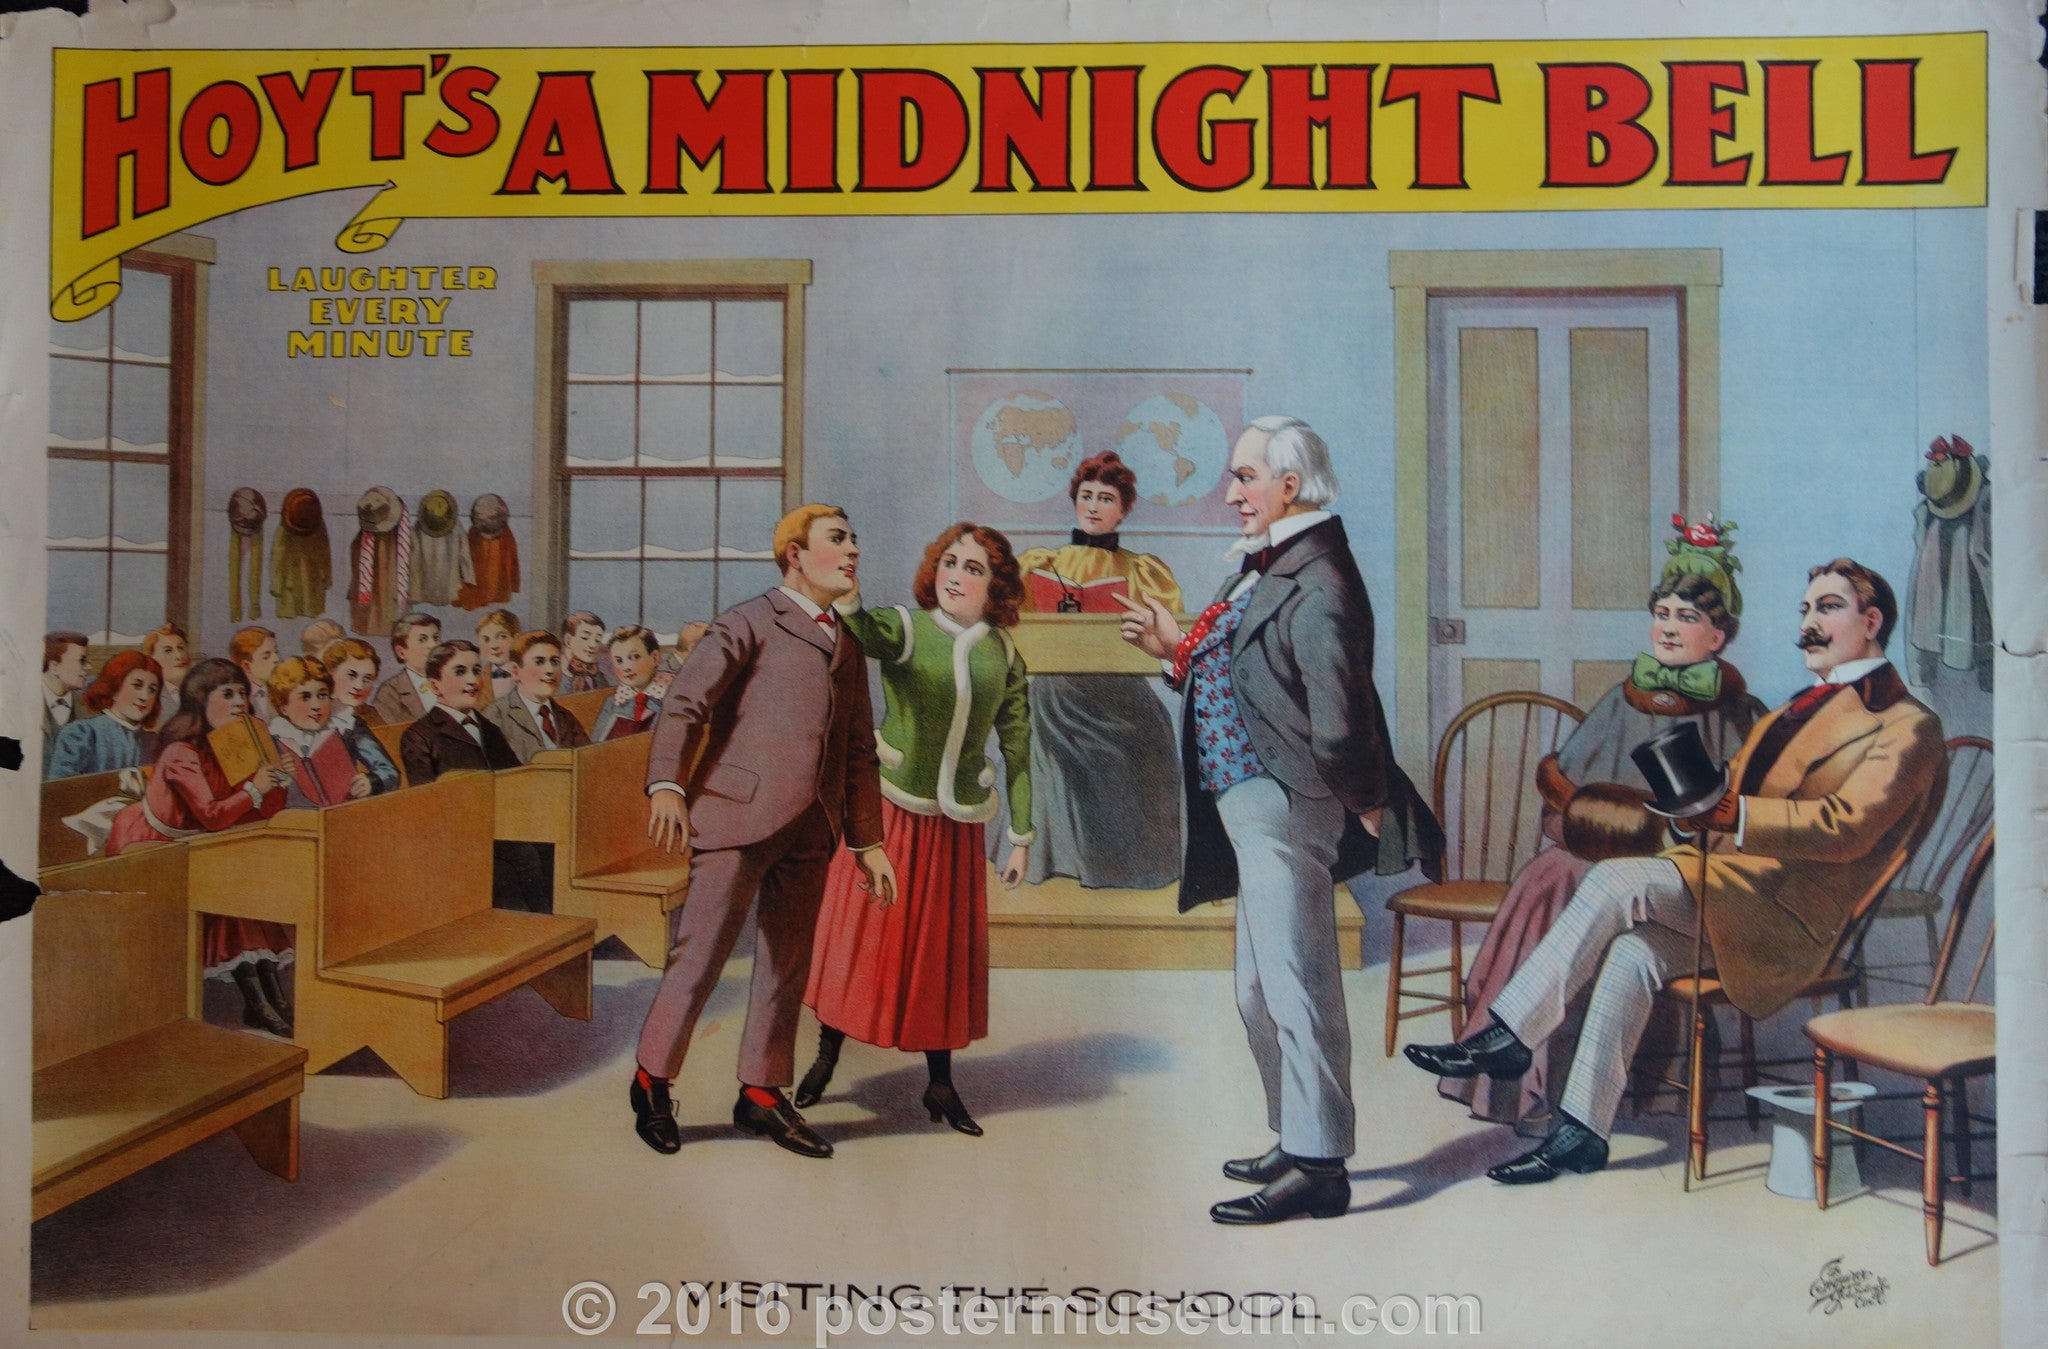 Hoyt's a Midnight Bell: Visiting the school